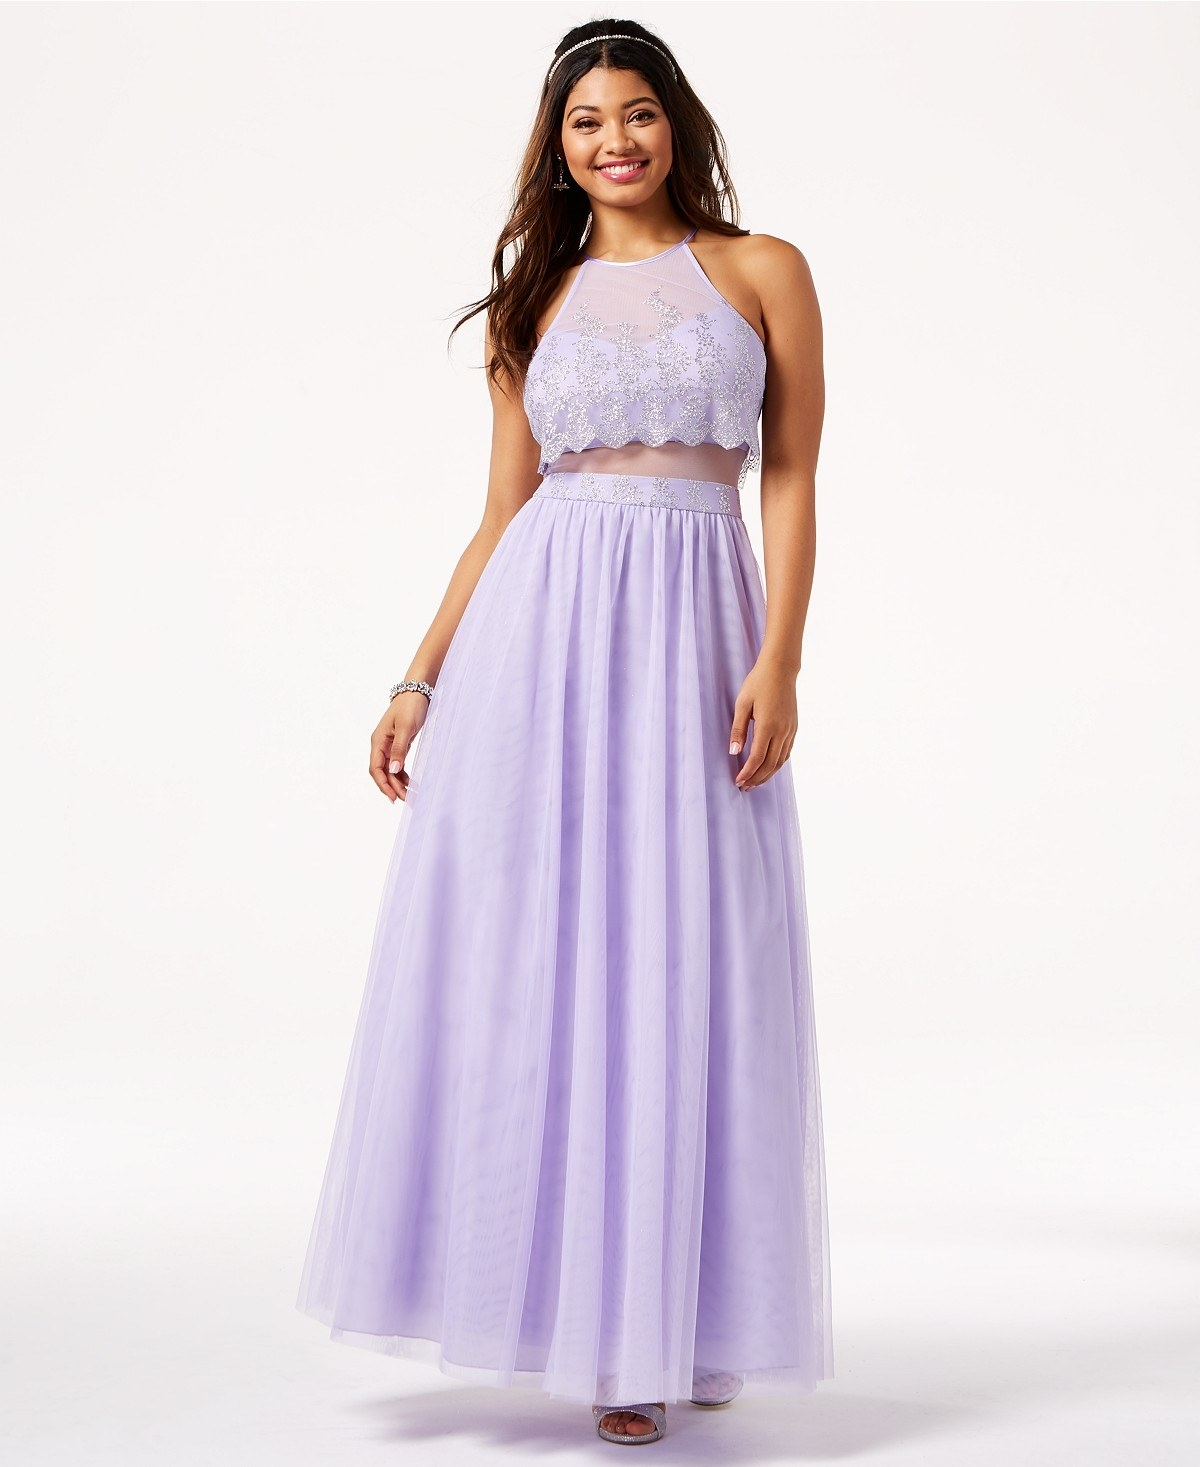 Best places to buy prom dresses online